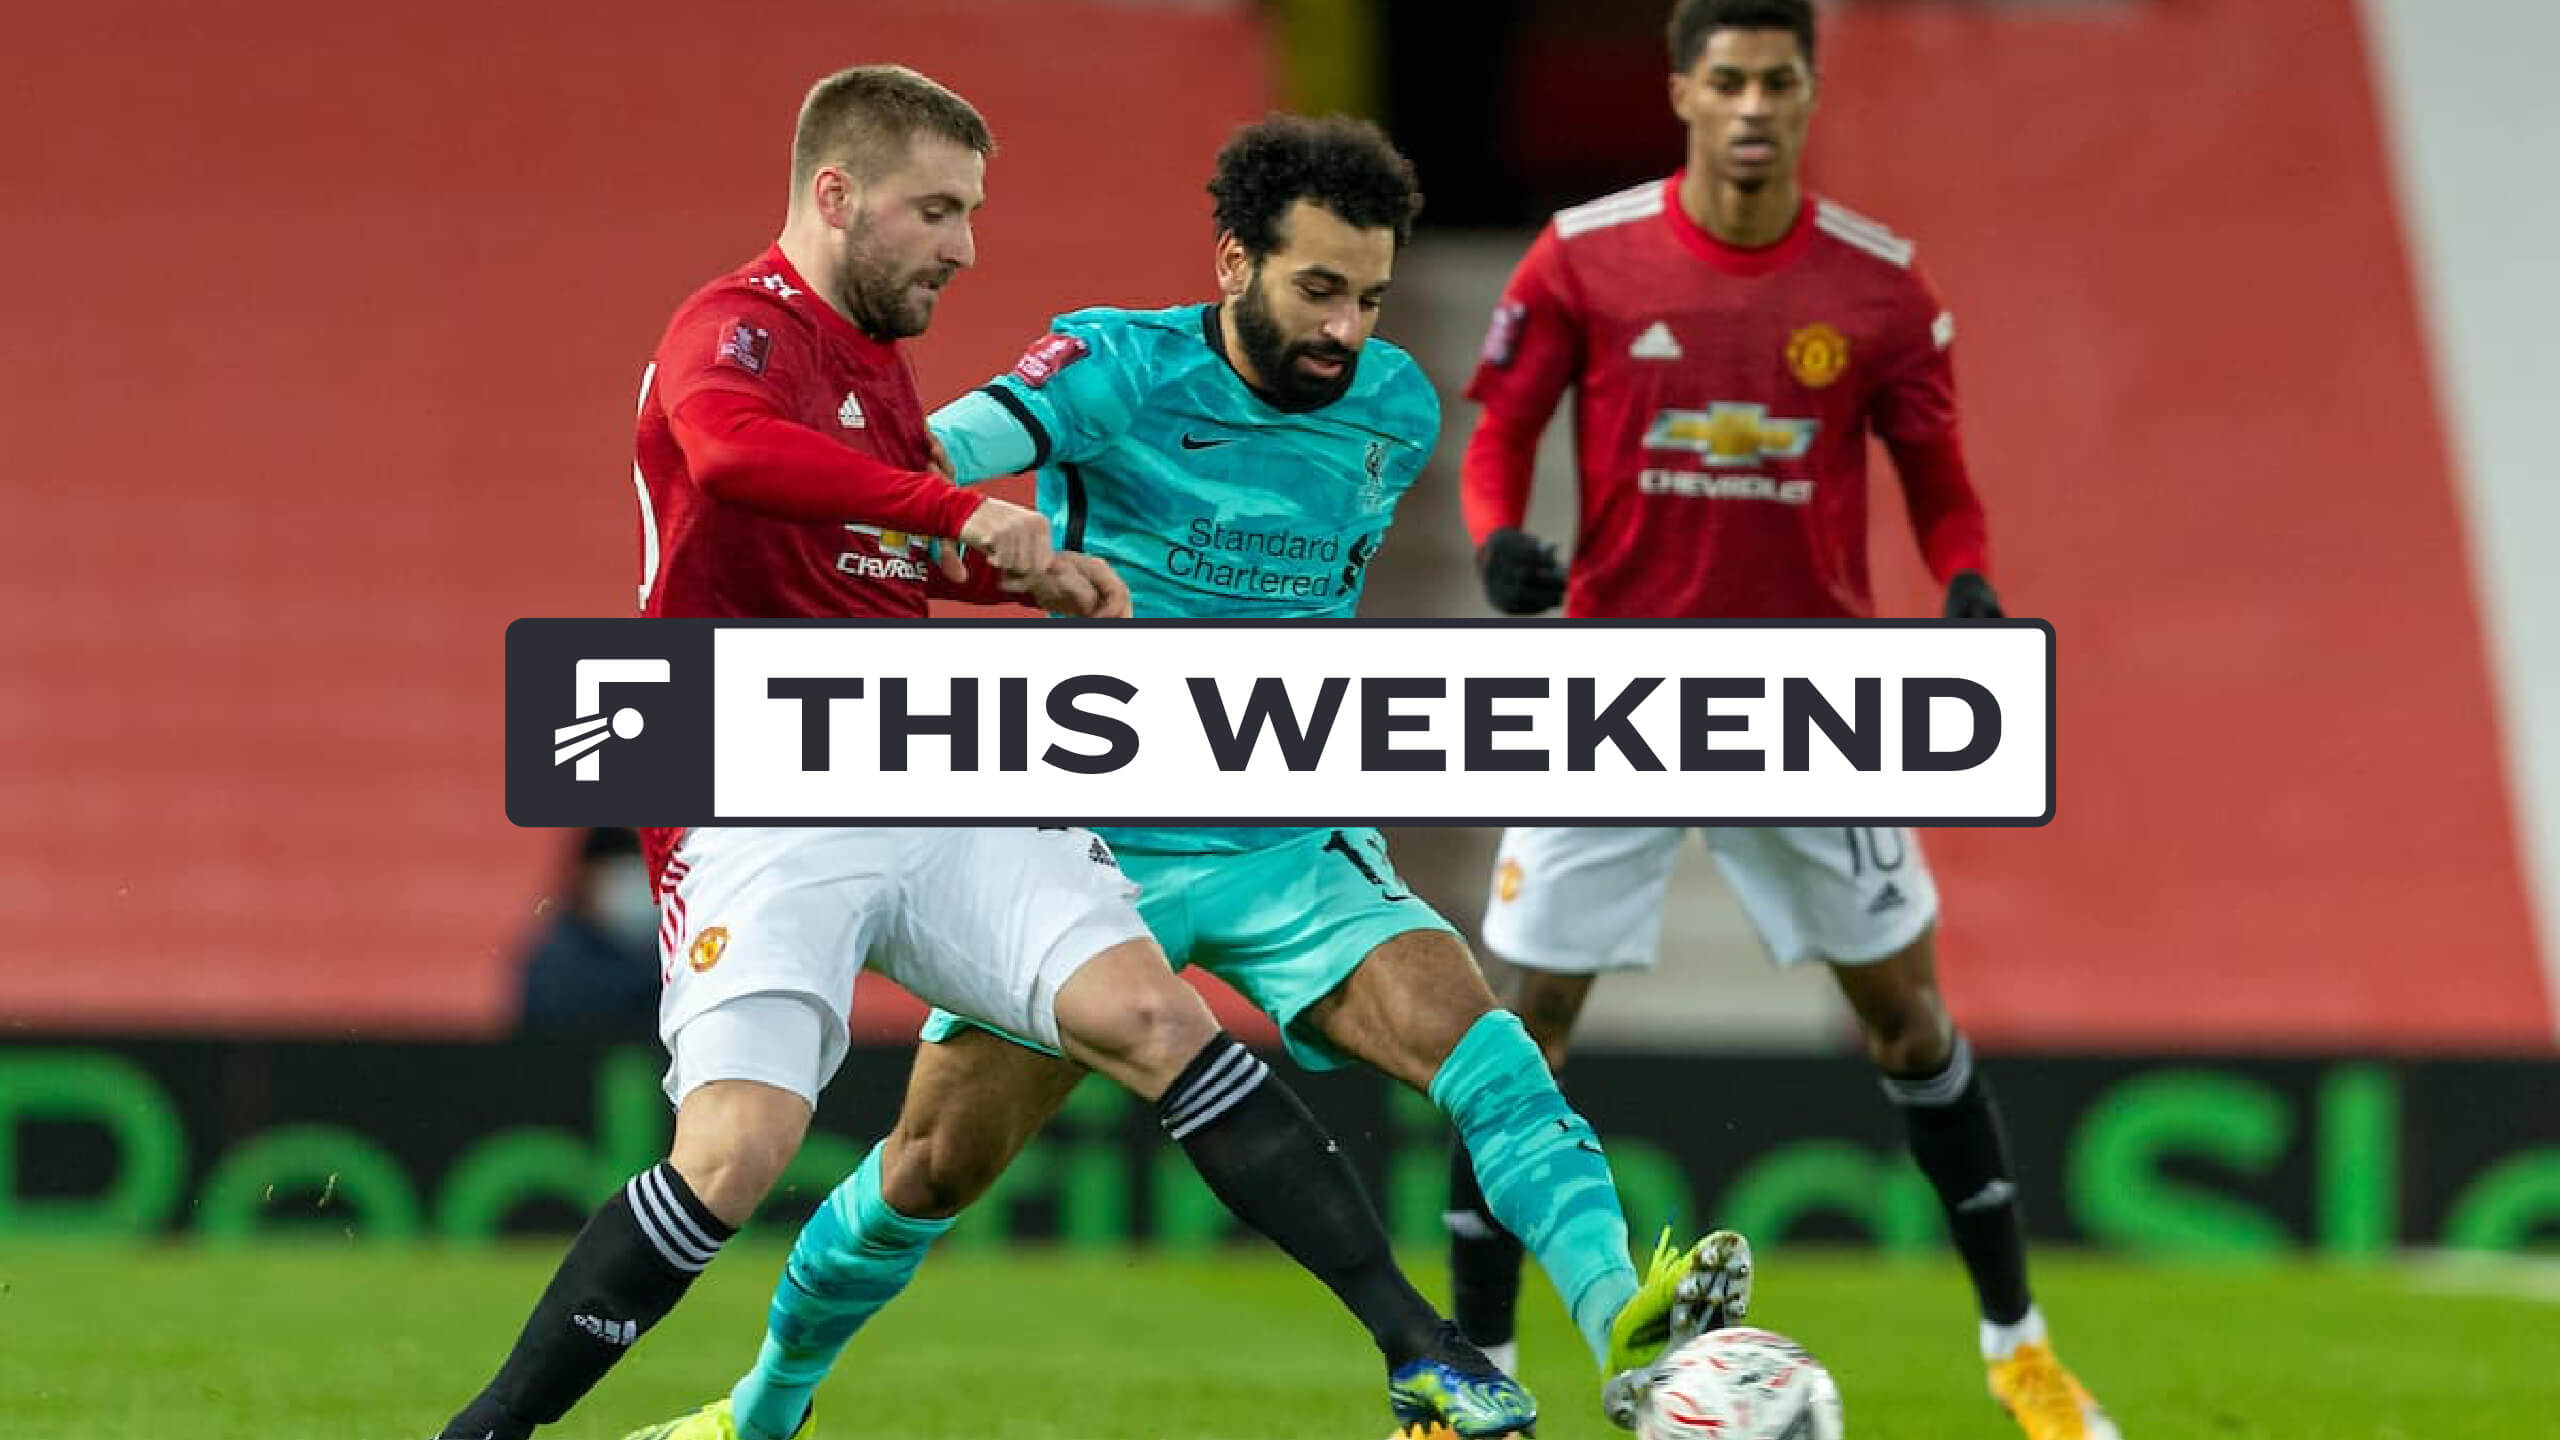 This Weekend: Man United vs. Liverpool, crunch time in France, Spain and Italy